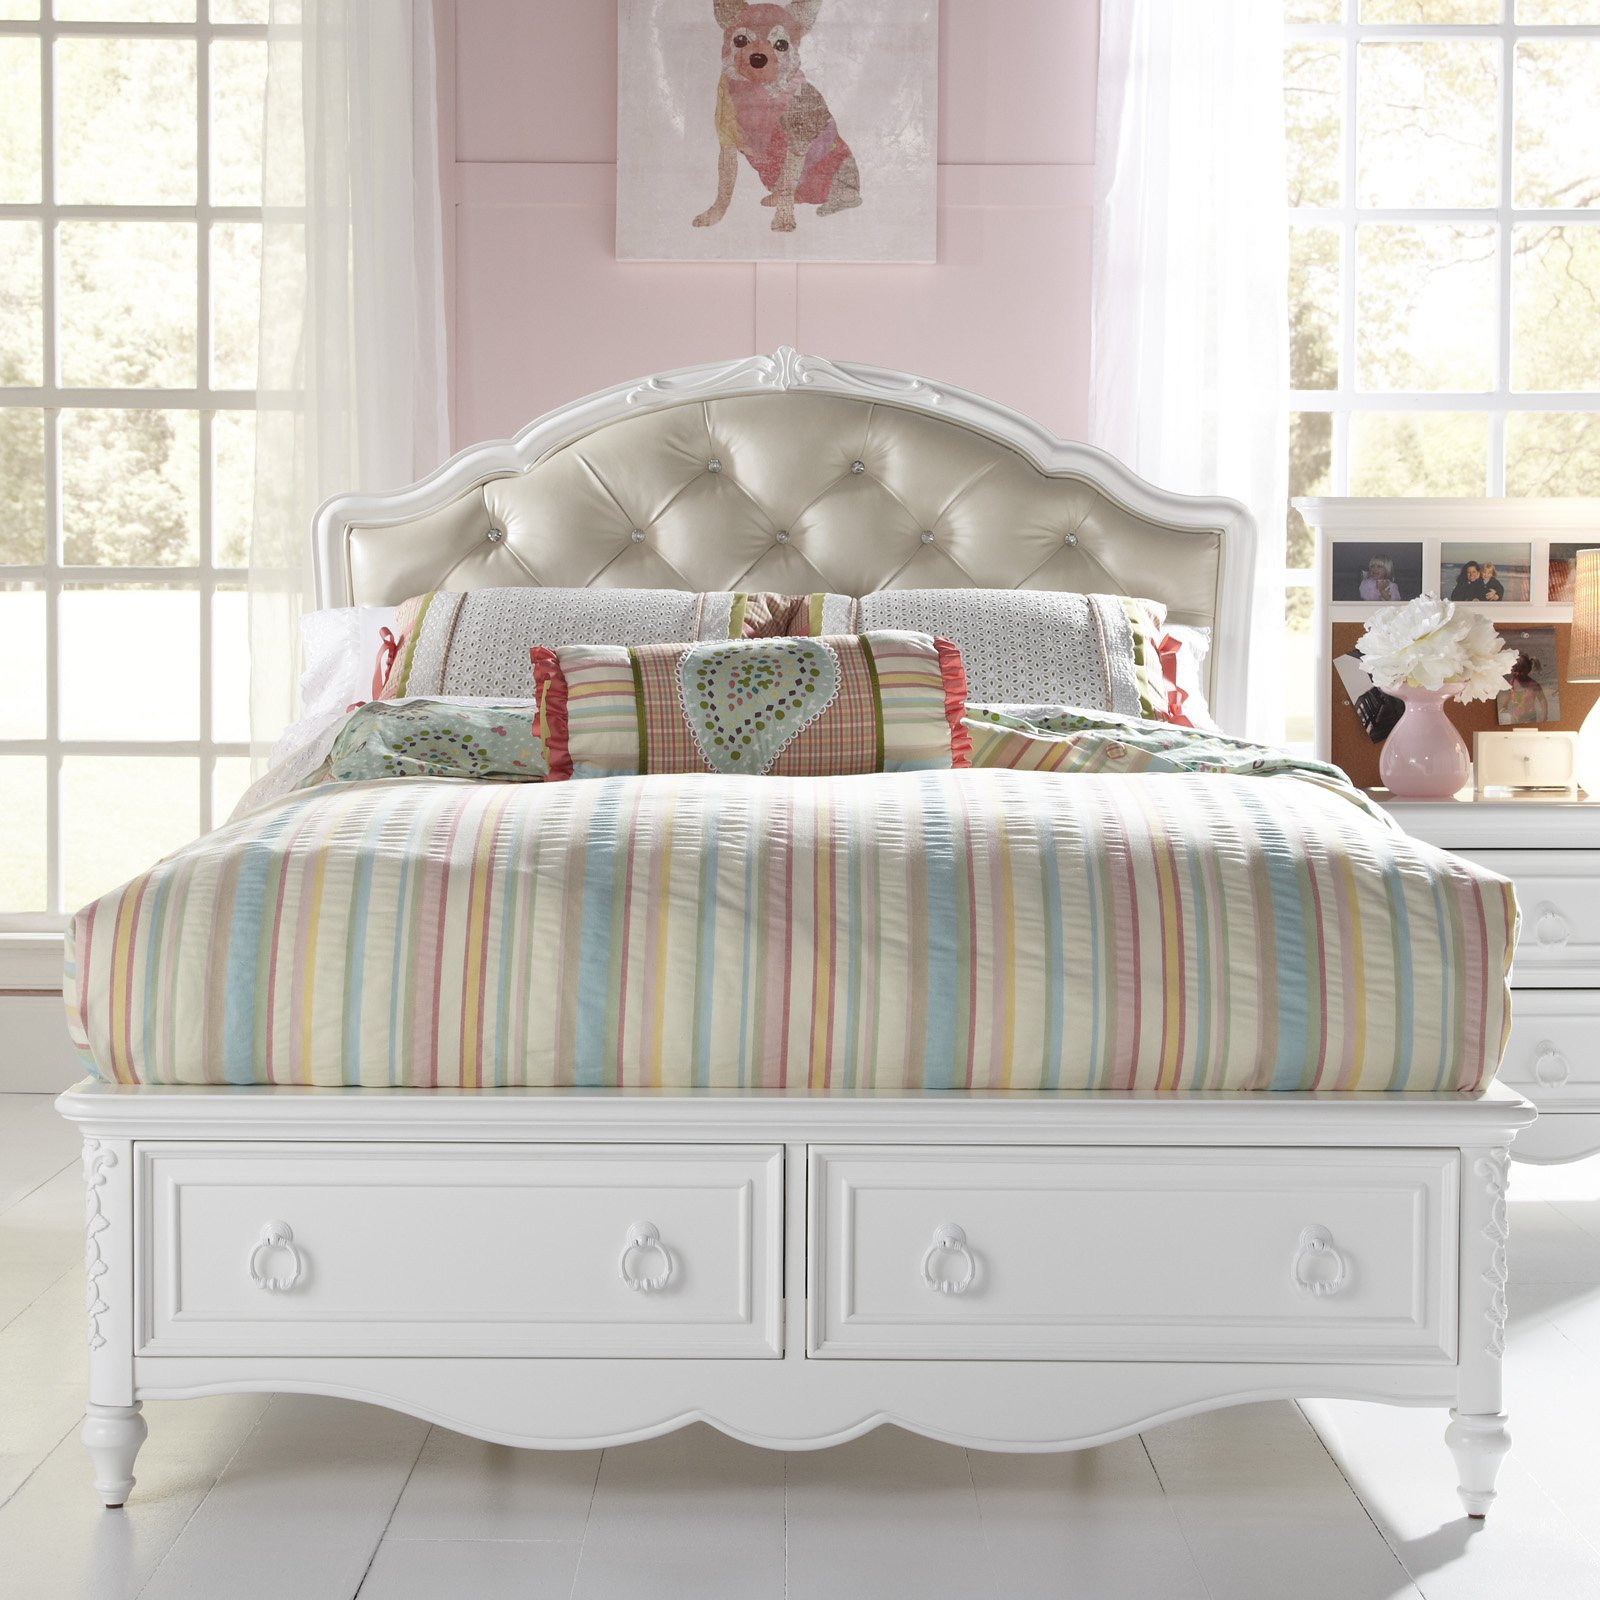 SweetHeart Upholstered Panel Bed - White